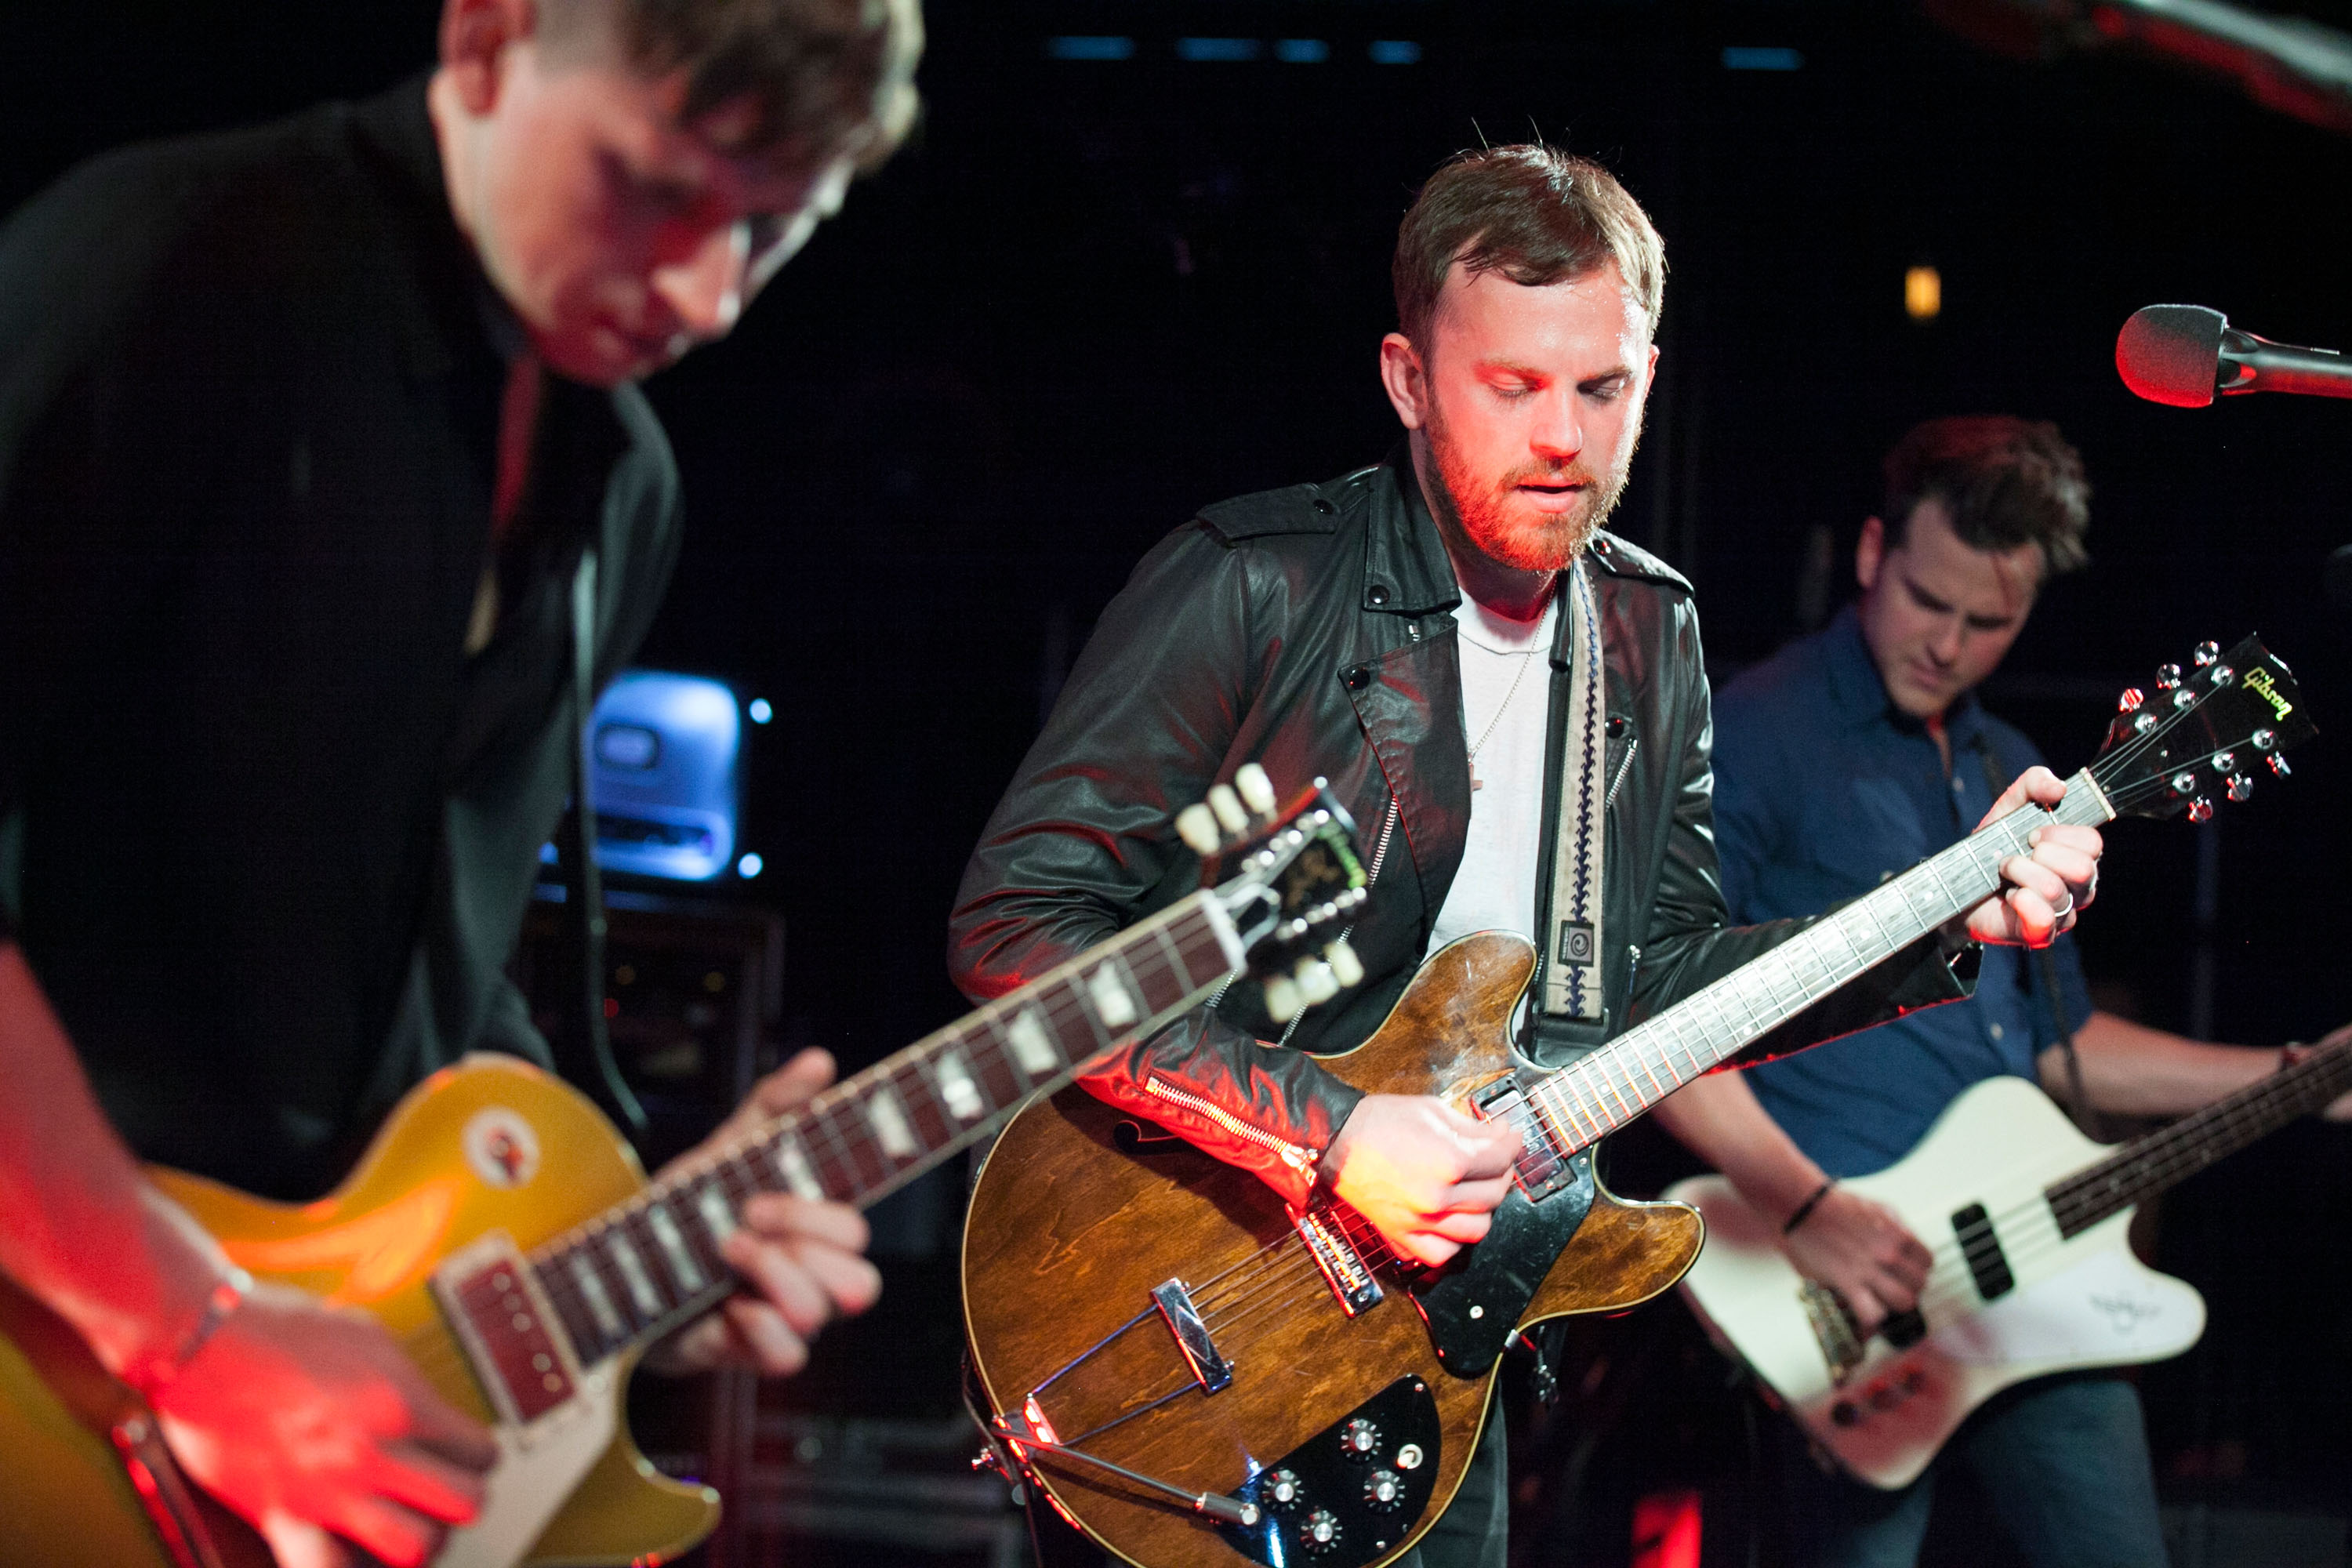 (left-right) Matthew Followill, Caleb Followill and Jared Followill of The Kings of Leon perform At The Red Bull Sound Space At KROQ on March 24, 2014 in Los Angeles.